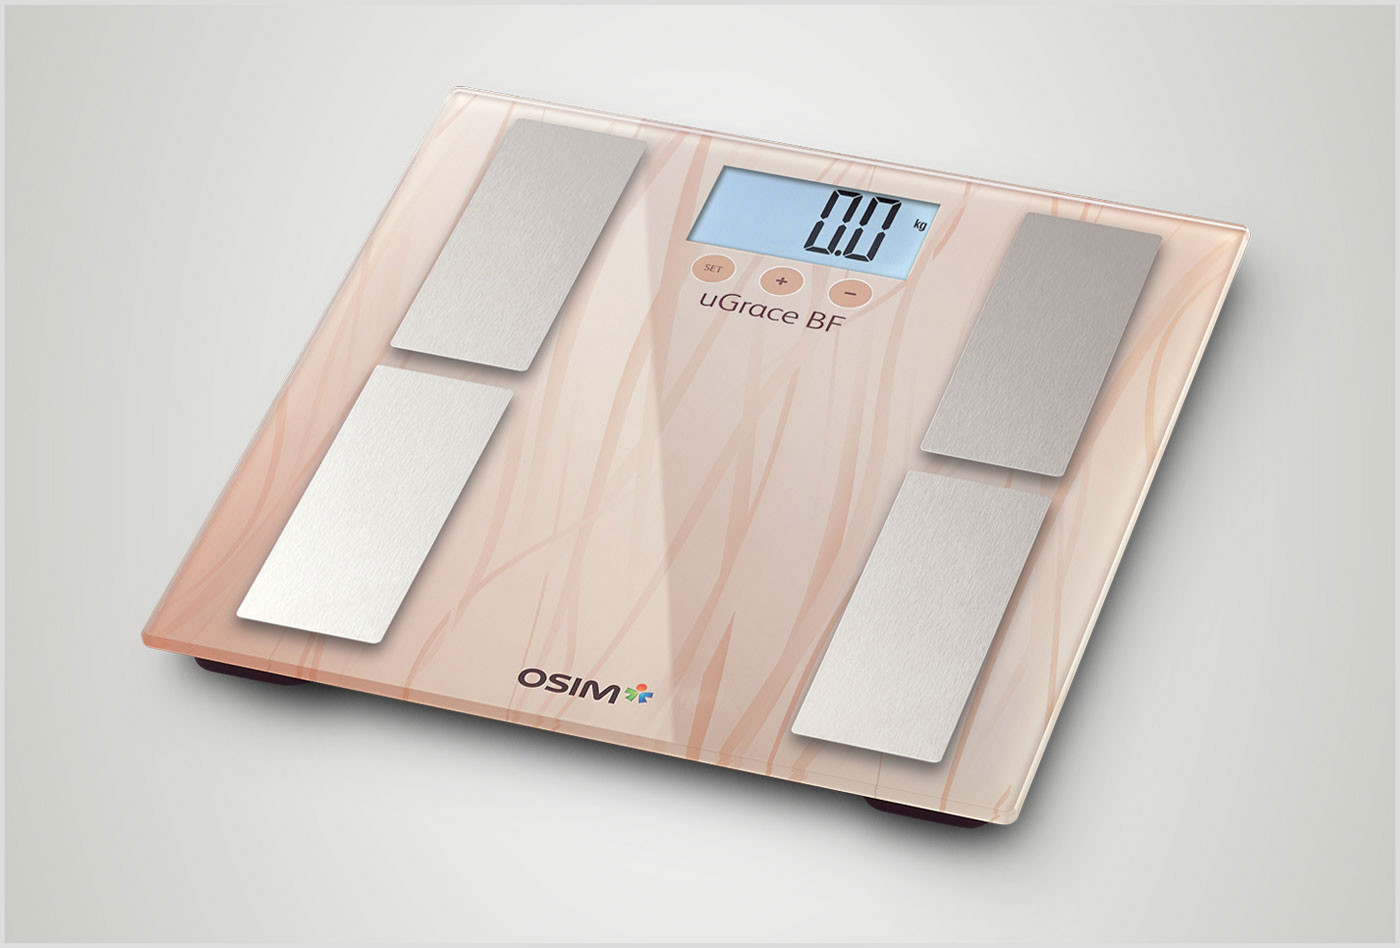 uGrace BF Body Composition Monitor